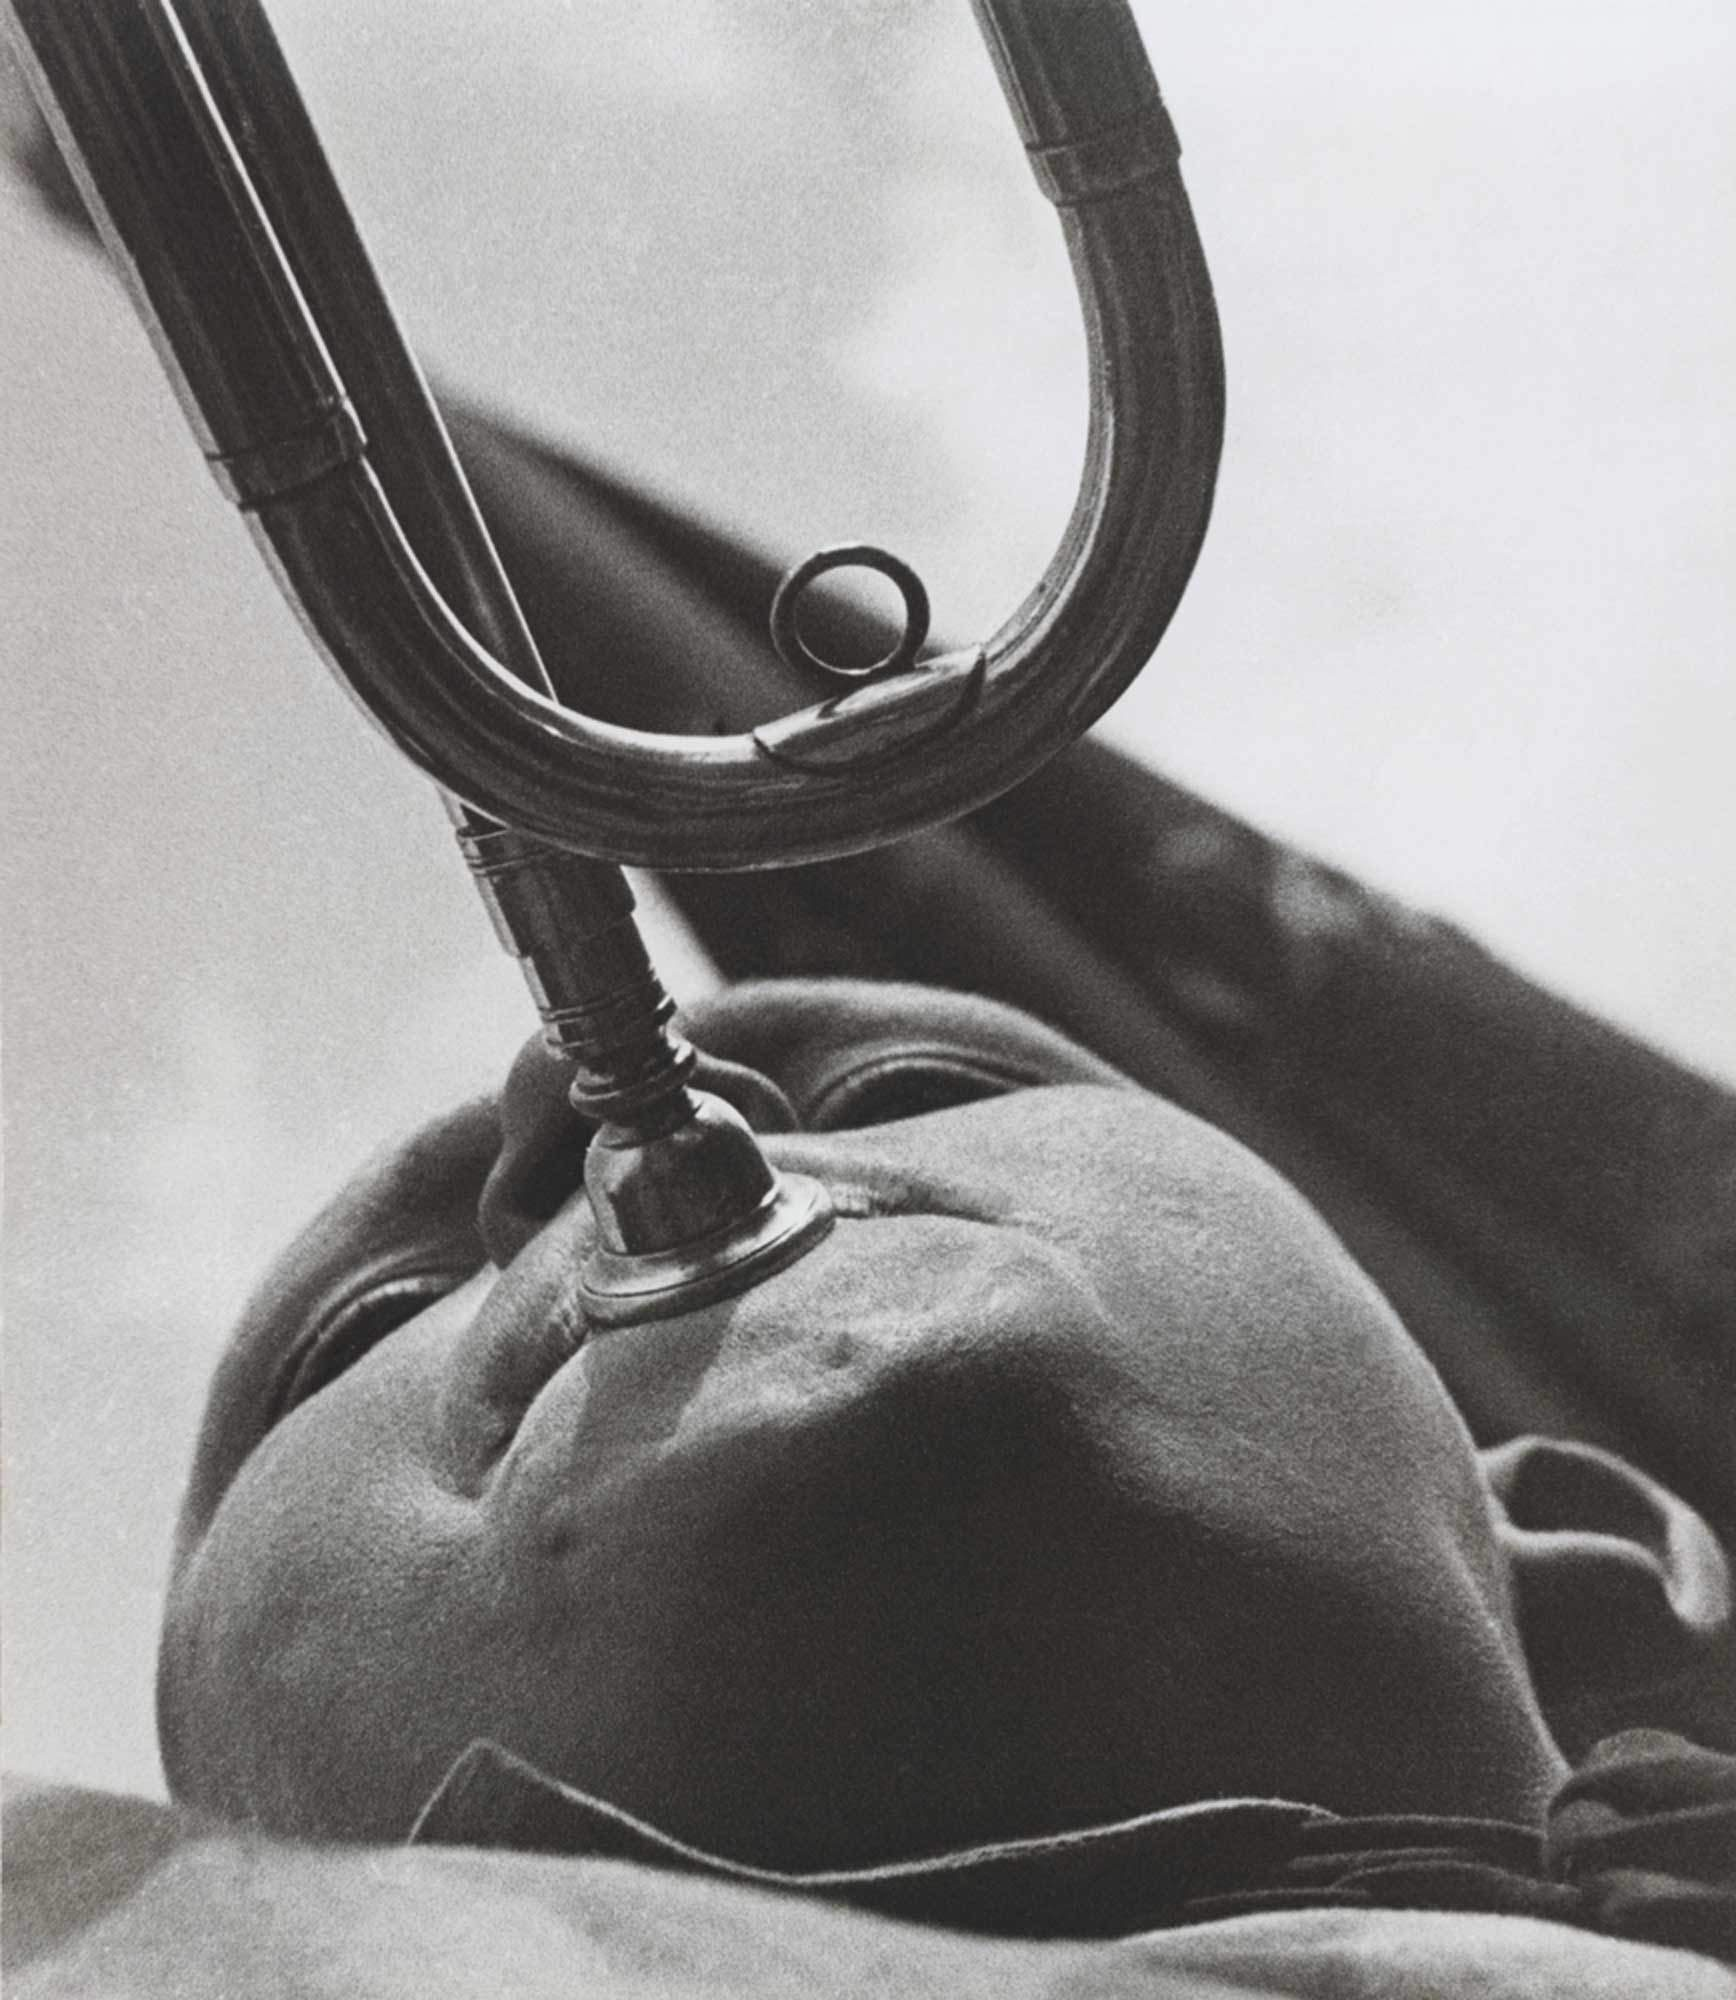 Aleksandr-Rodchenko-Photo_014